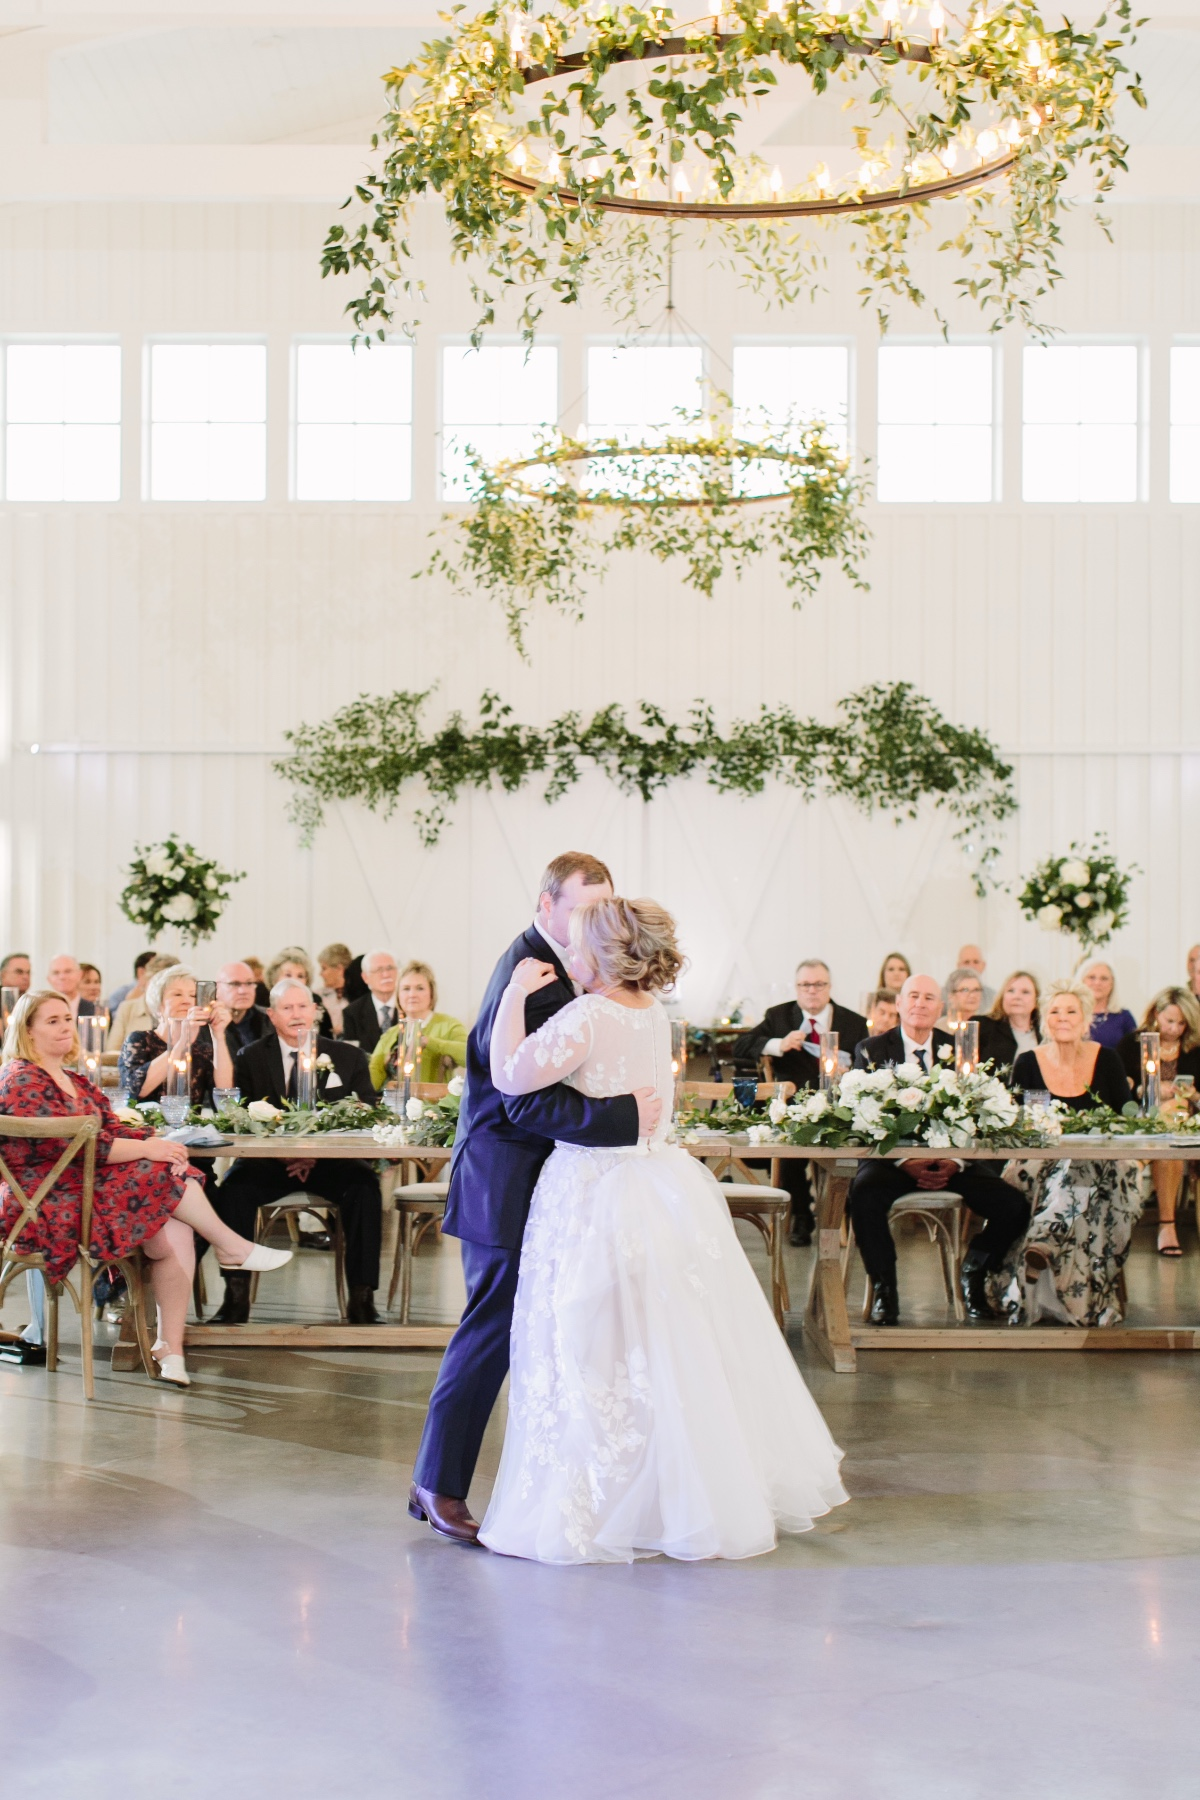 photo of the bride and groom taking their first dance as married couple